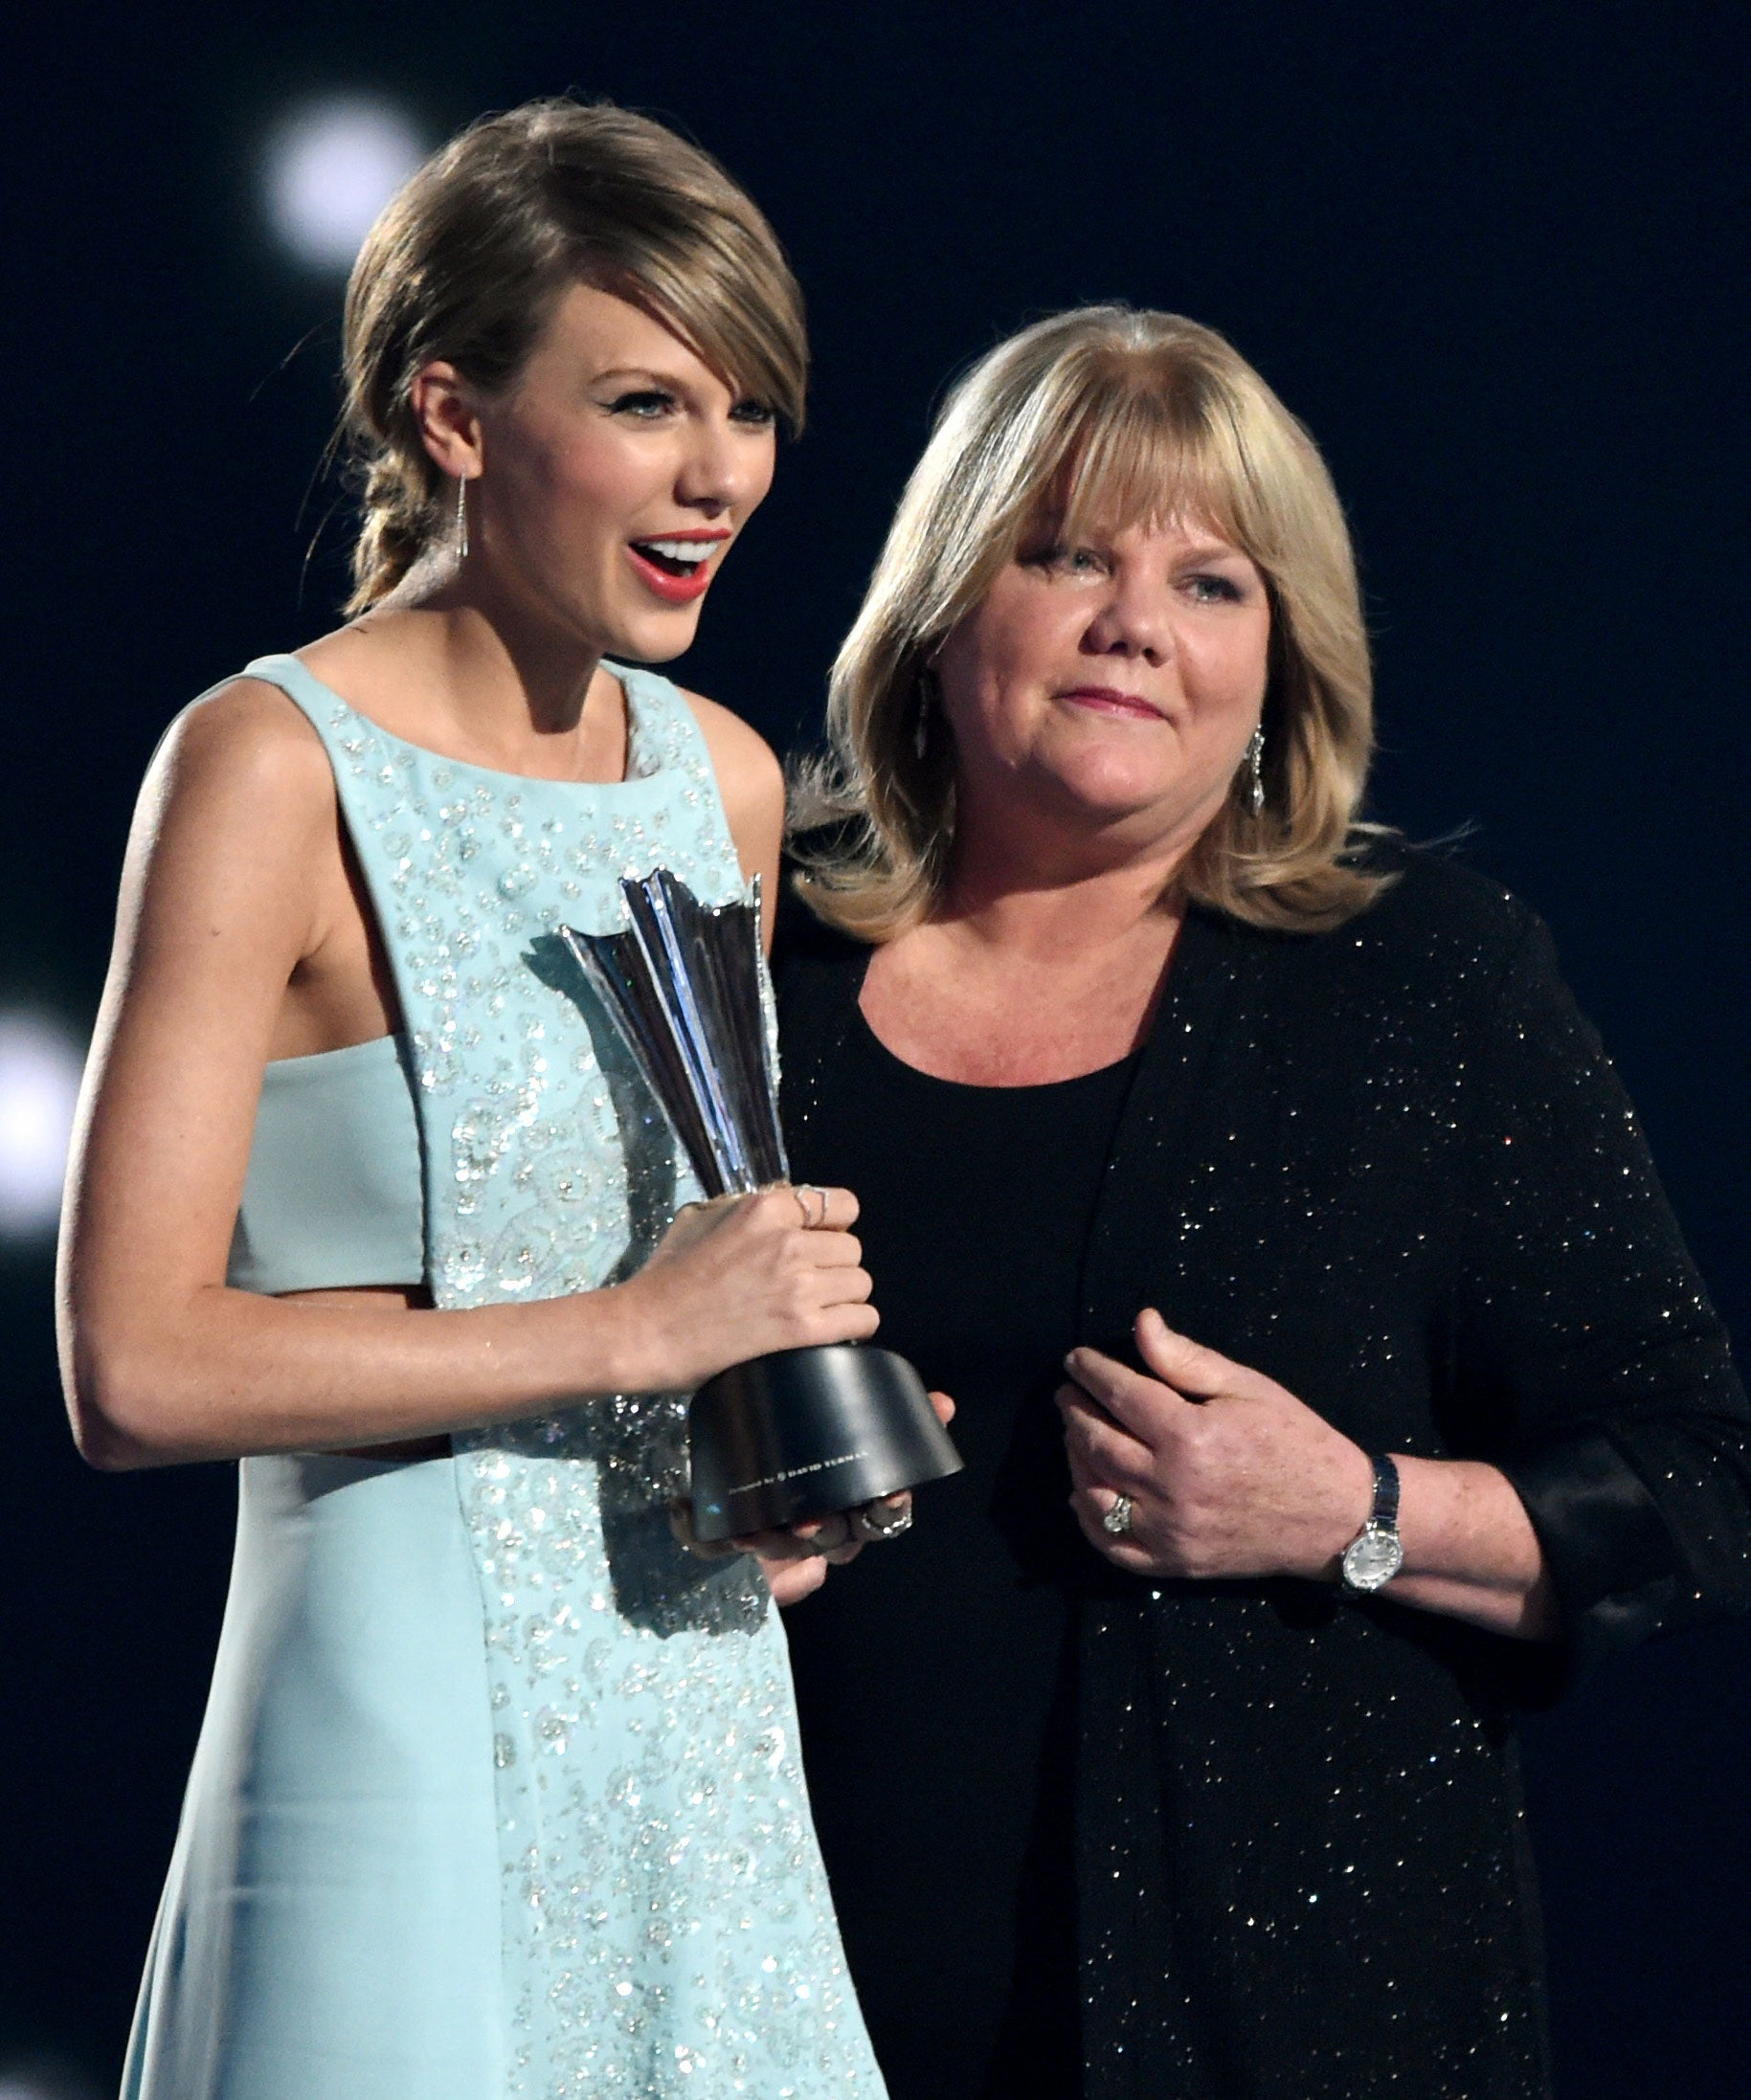 Taylor Swift Just Revealed Her Mother Has A Brain Tumor